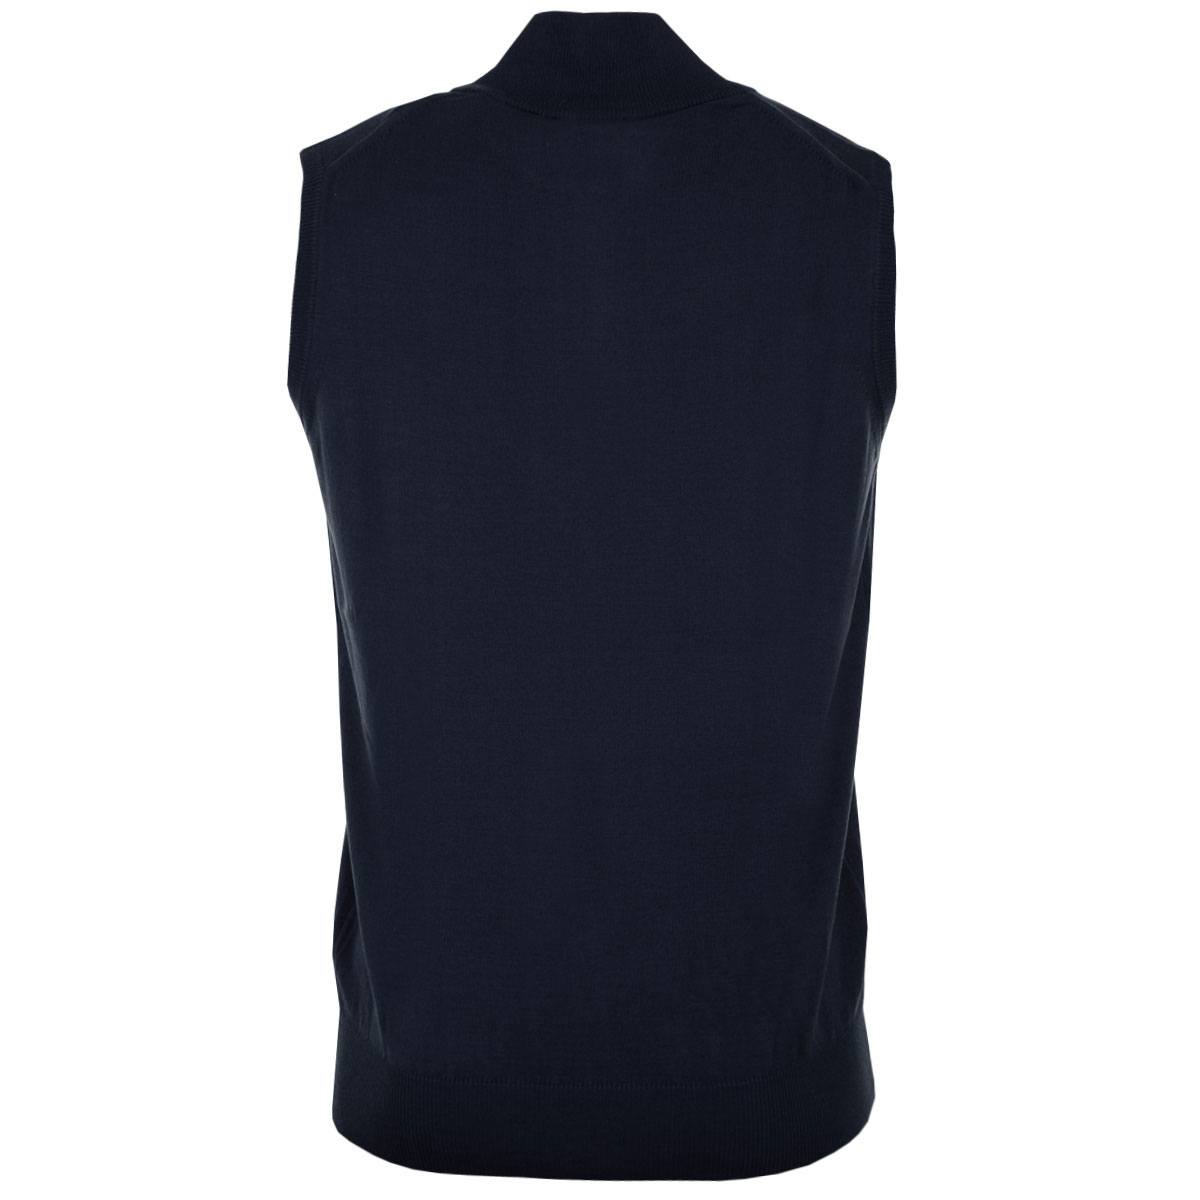 Calvin-Klein-Golf-Mens-CK-V-Neck-Sleeveless-Sweater-Vest-Gilet-27-OFF-RRP thumbnail 17